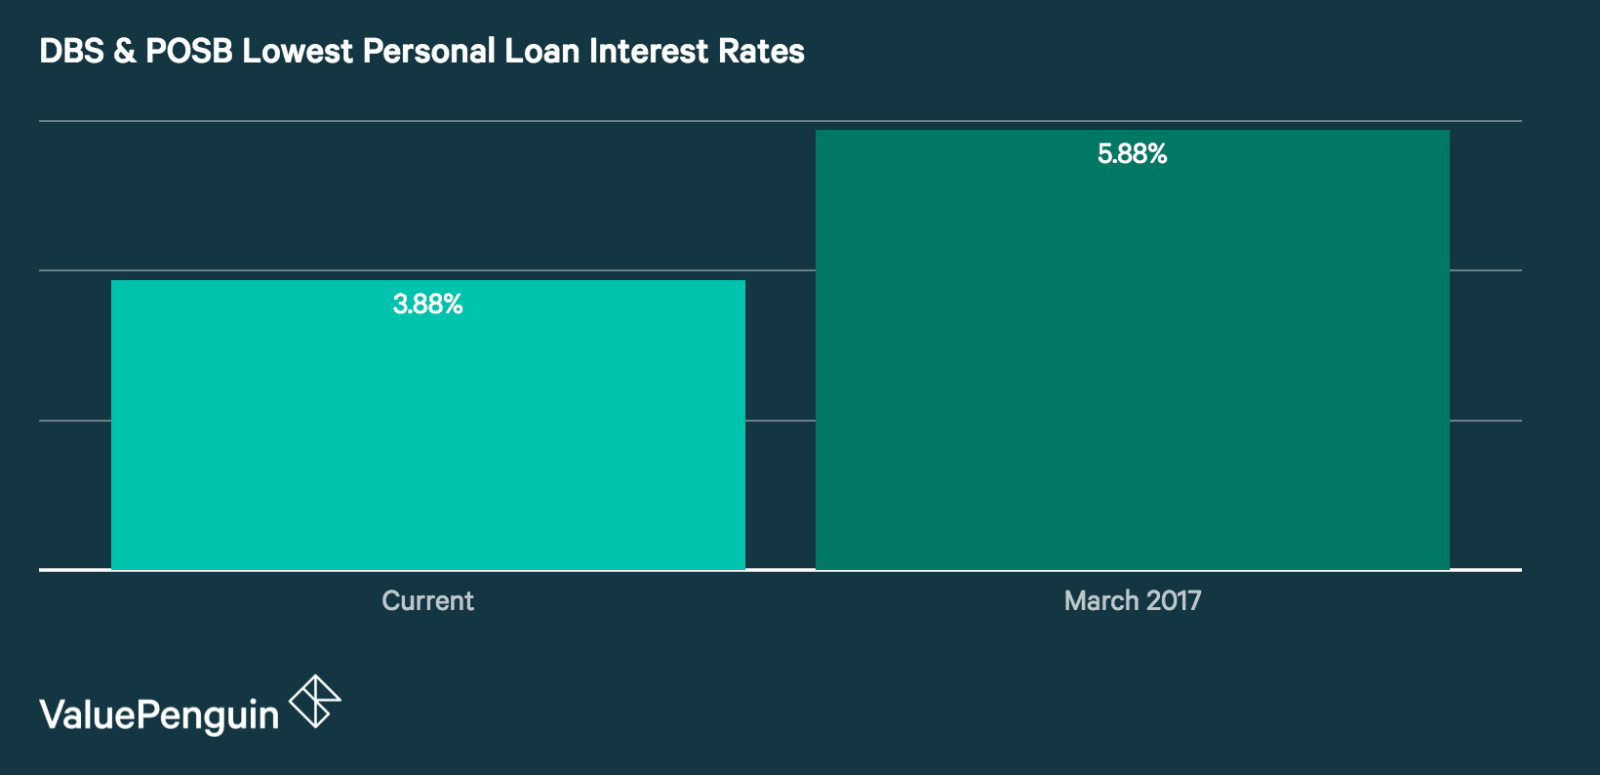 DBS & POSB Lowest Personal Loan Interest Rates, 2018 vs 2017